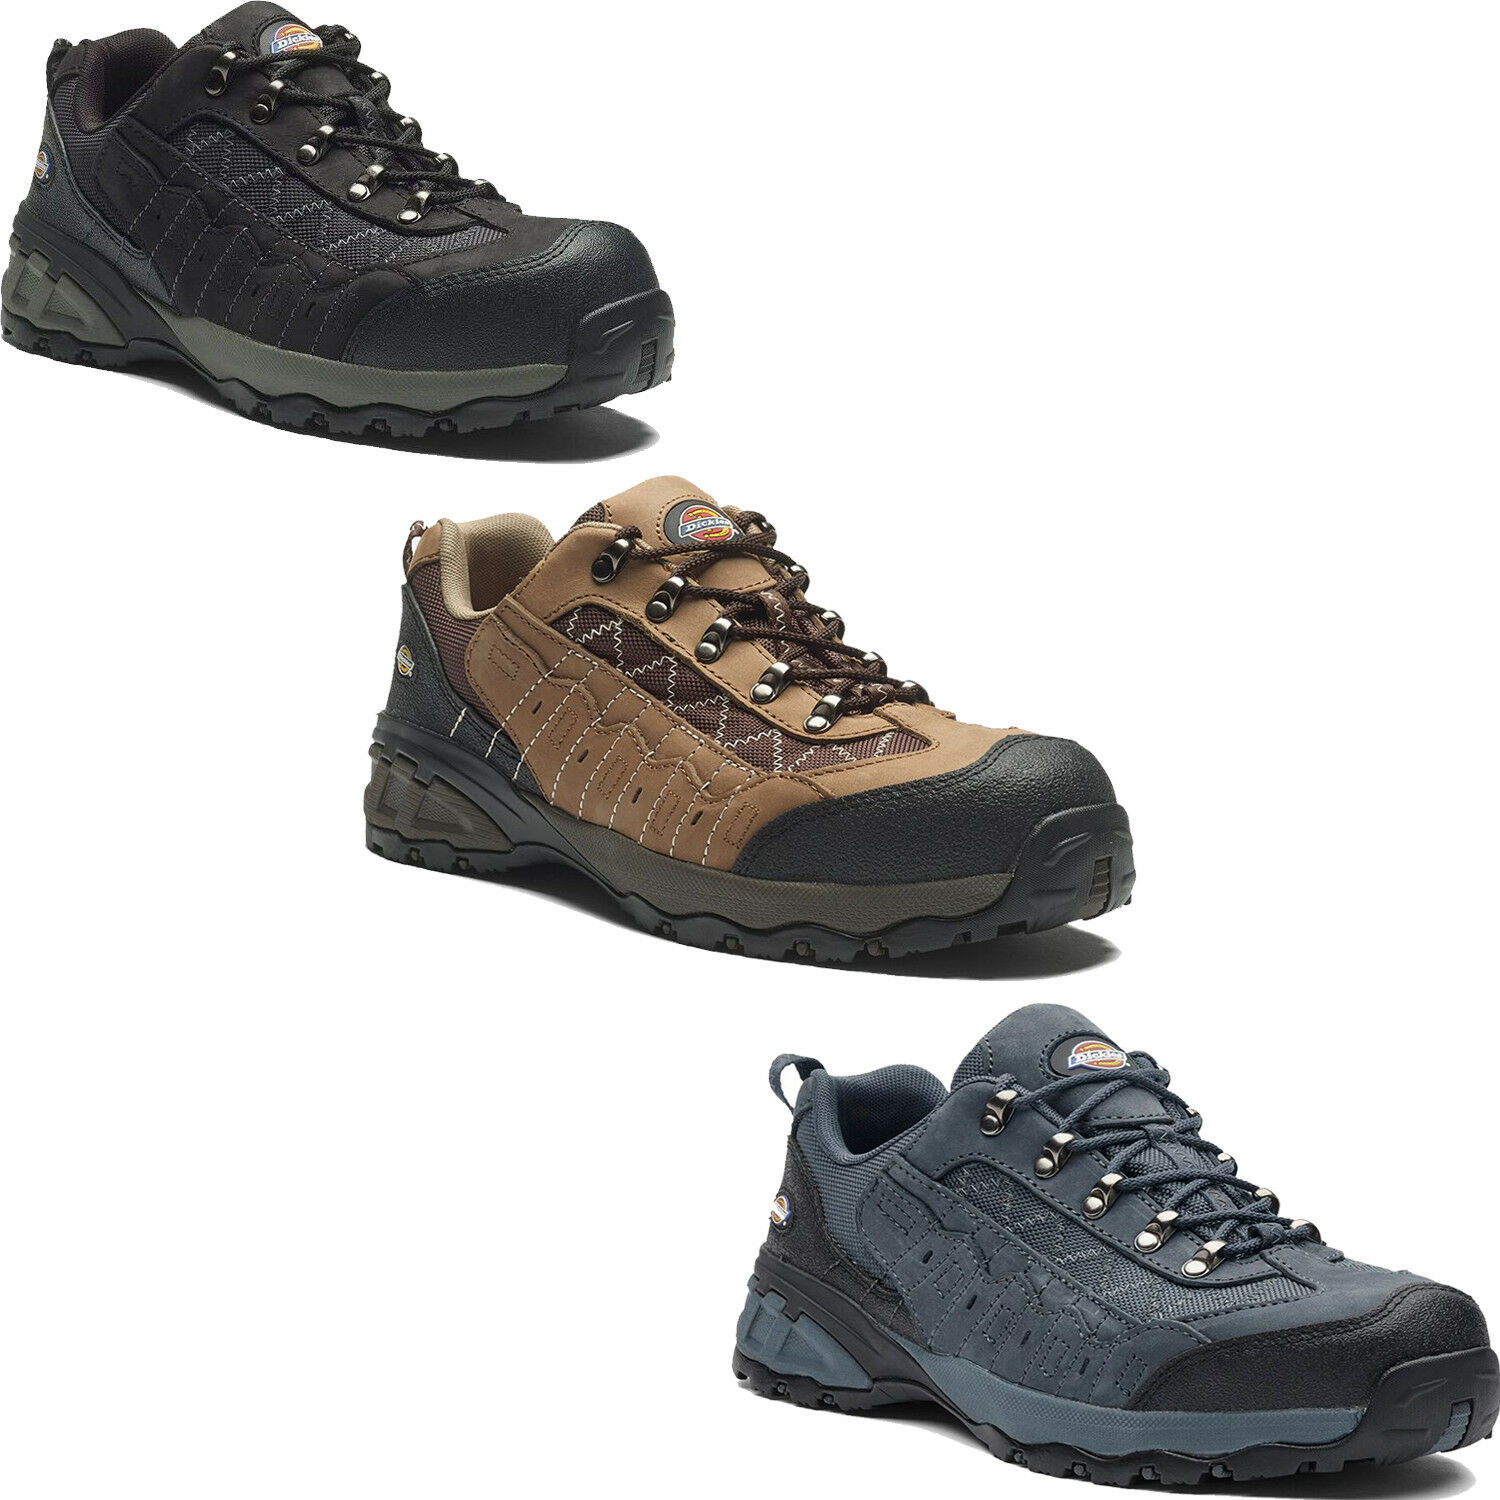 Dickies Gironde Safety Work Trainer shoes Men's (Sizes 6-12)